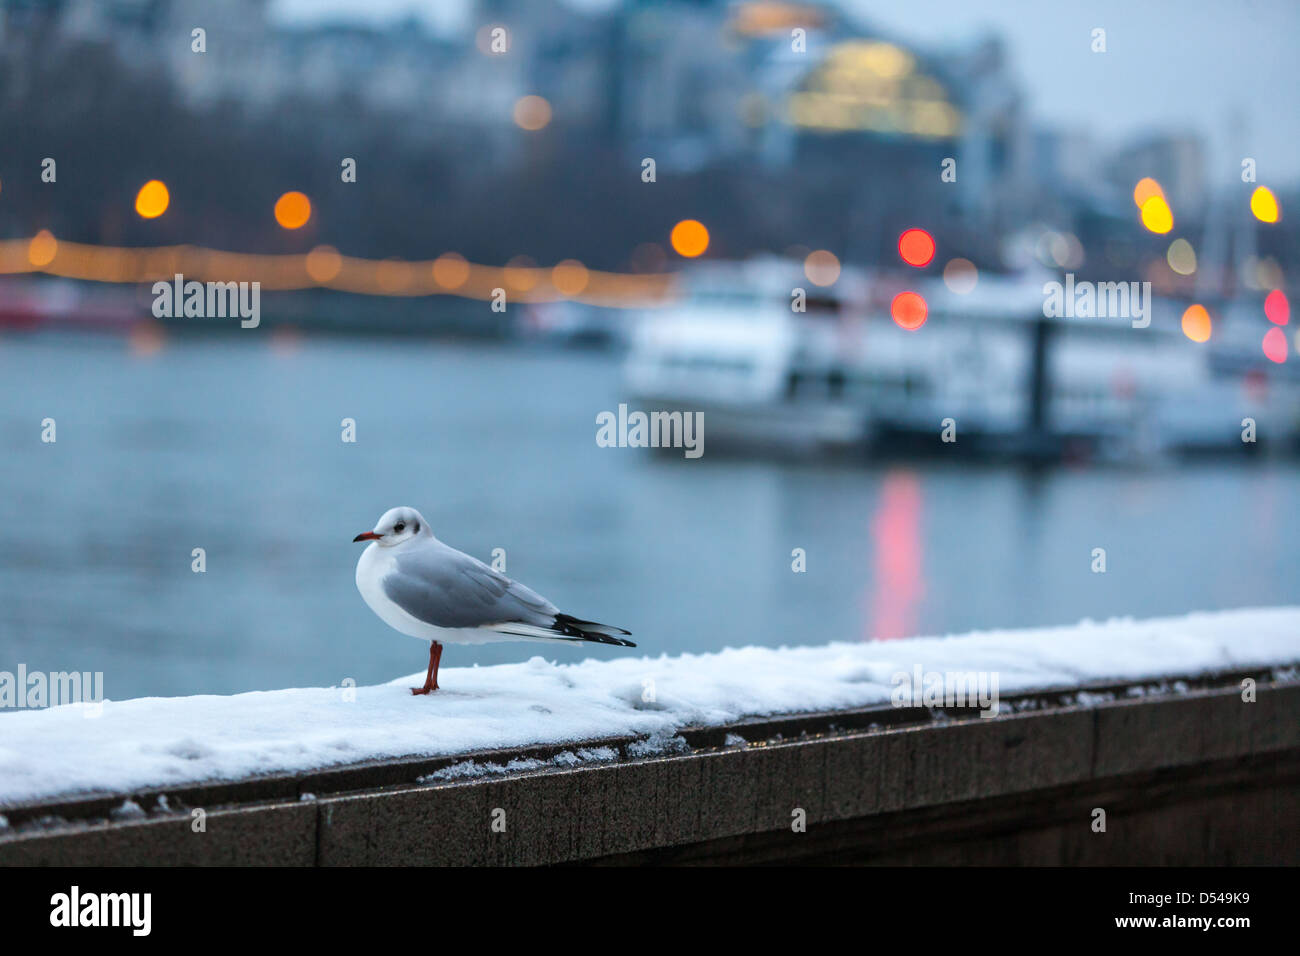 Common gull standing on a snowy surface on the South Bank of River Thames, London, England, UK. - Stock Image